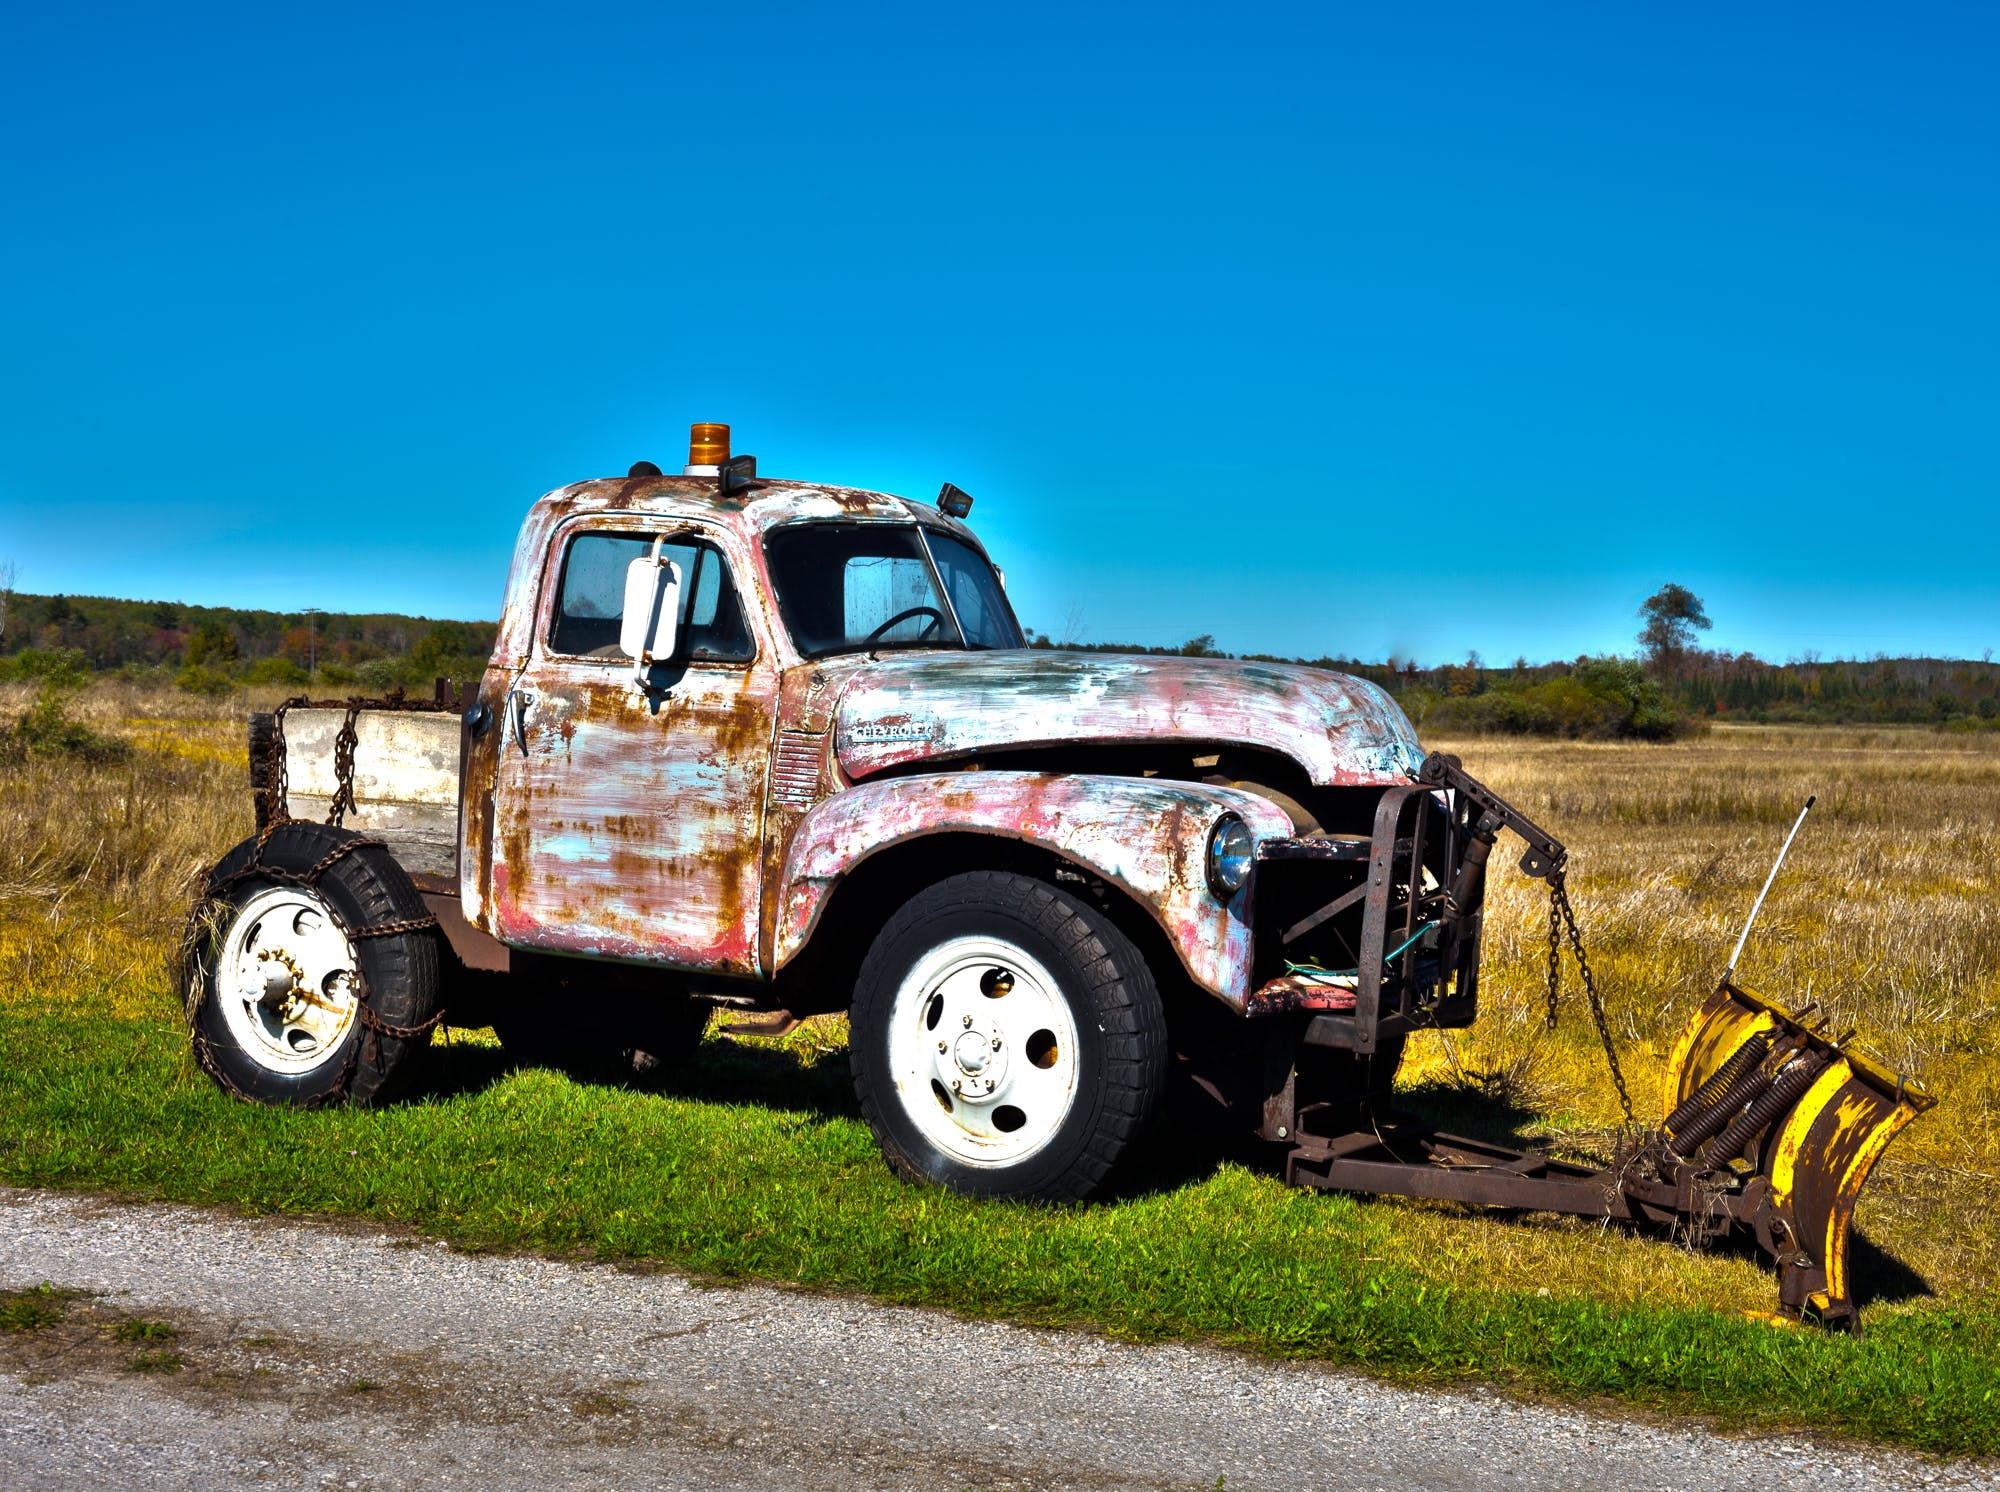 Free stock photo of hdr, old truck, pickup, plow